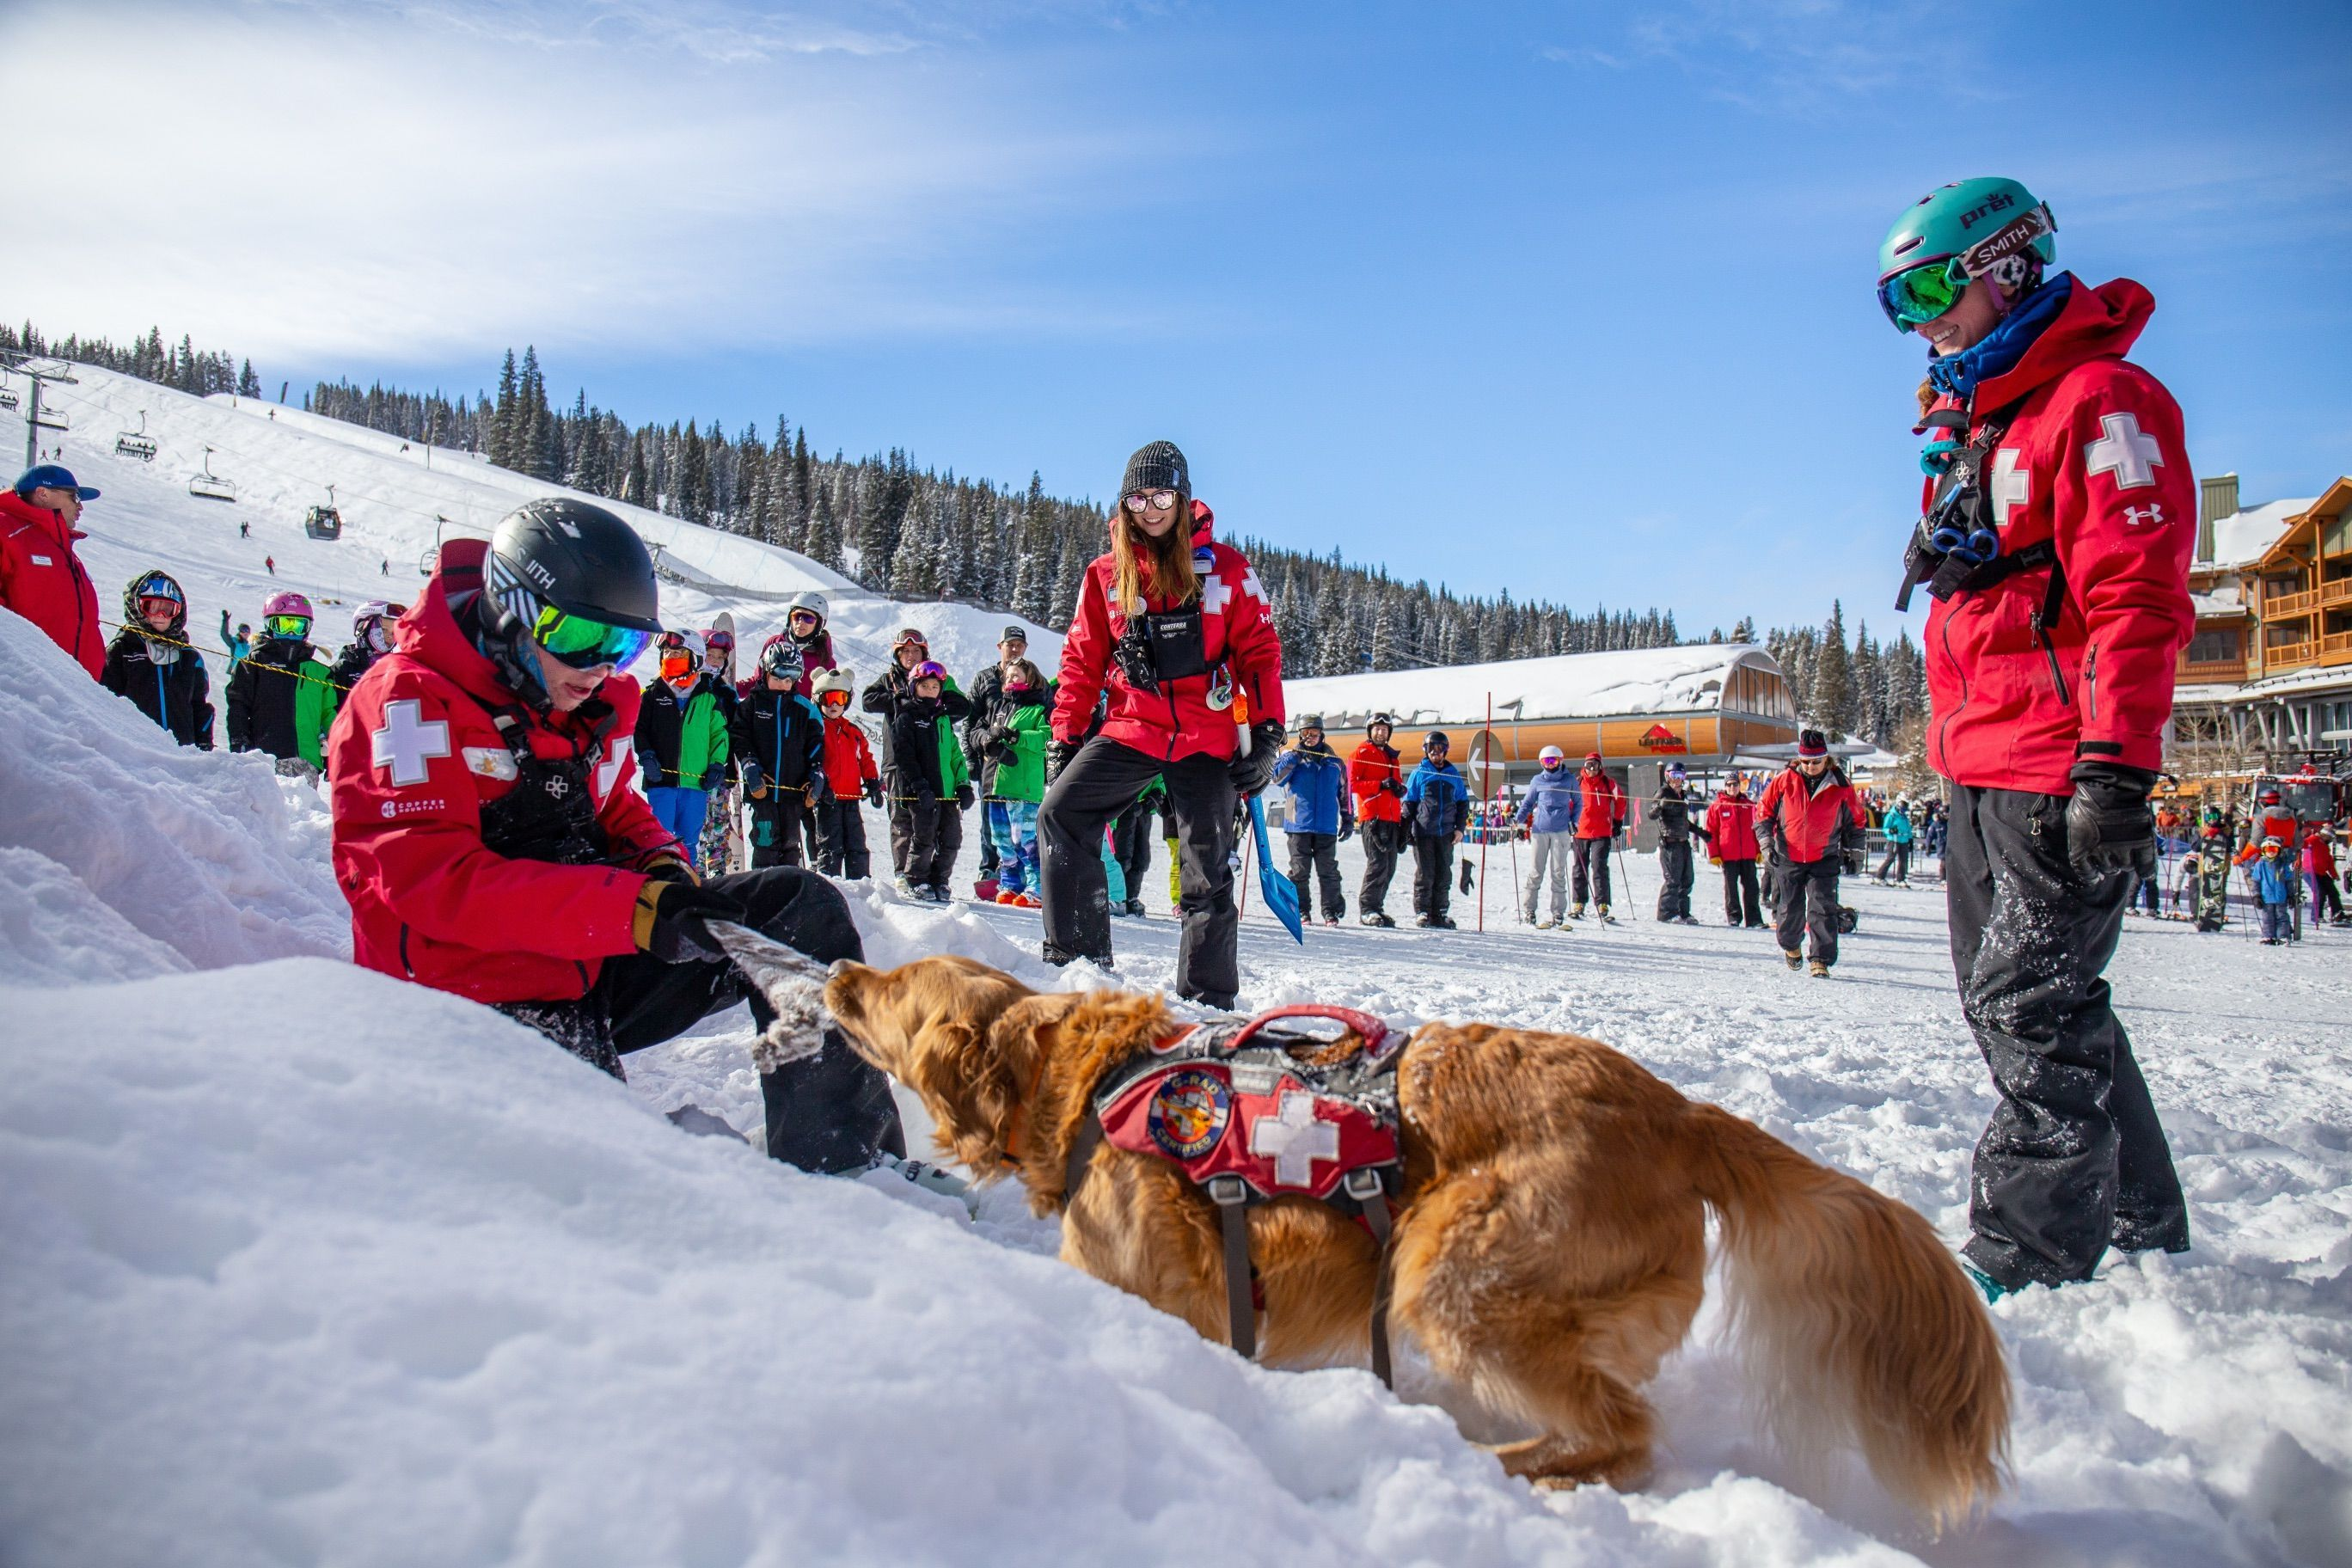 Ski Patrol Copper Mountain Colorado Safety Emt Medic Skiing Snowboarding Helicopter Training Avala Heli Skiing Copper Mountain Copper Mountain Resort